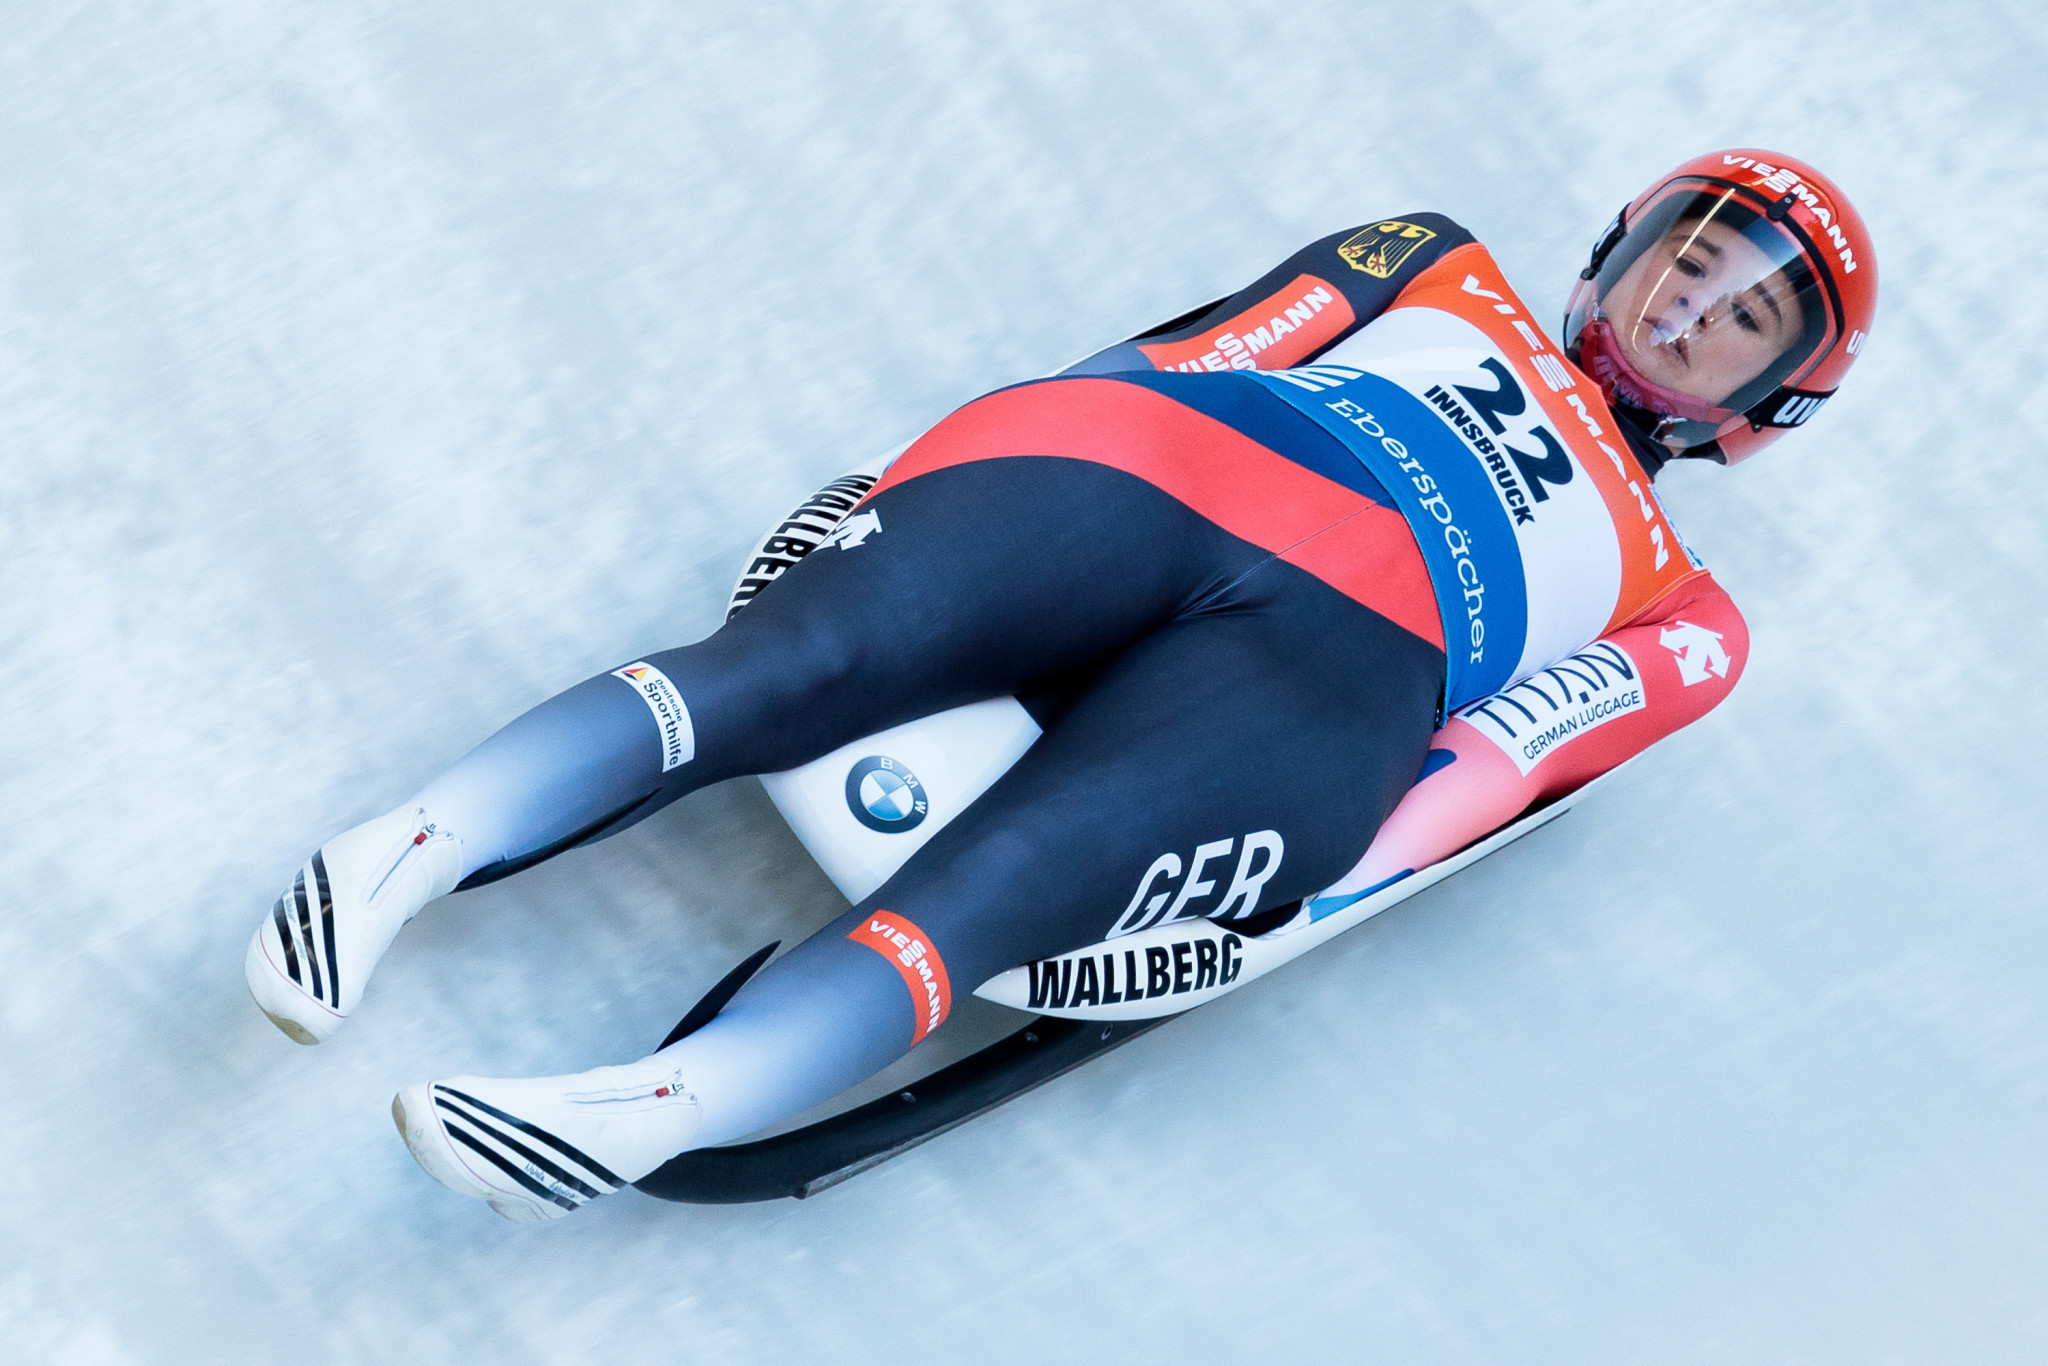 Geisenberger extends Luge World Cup lead with victory in Winterberg